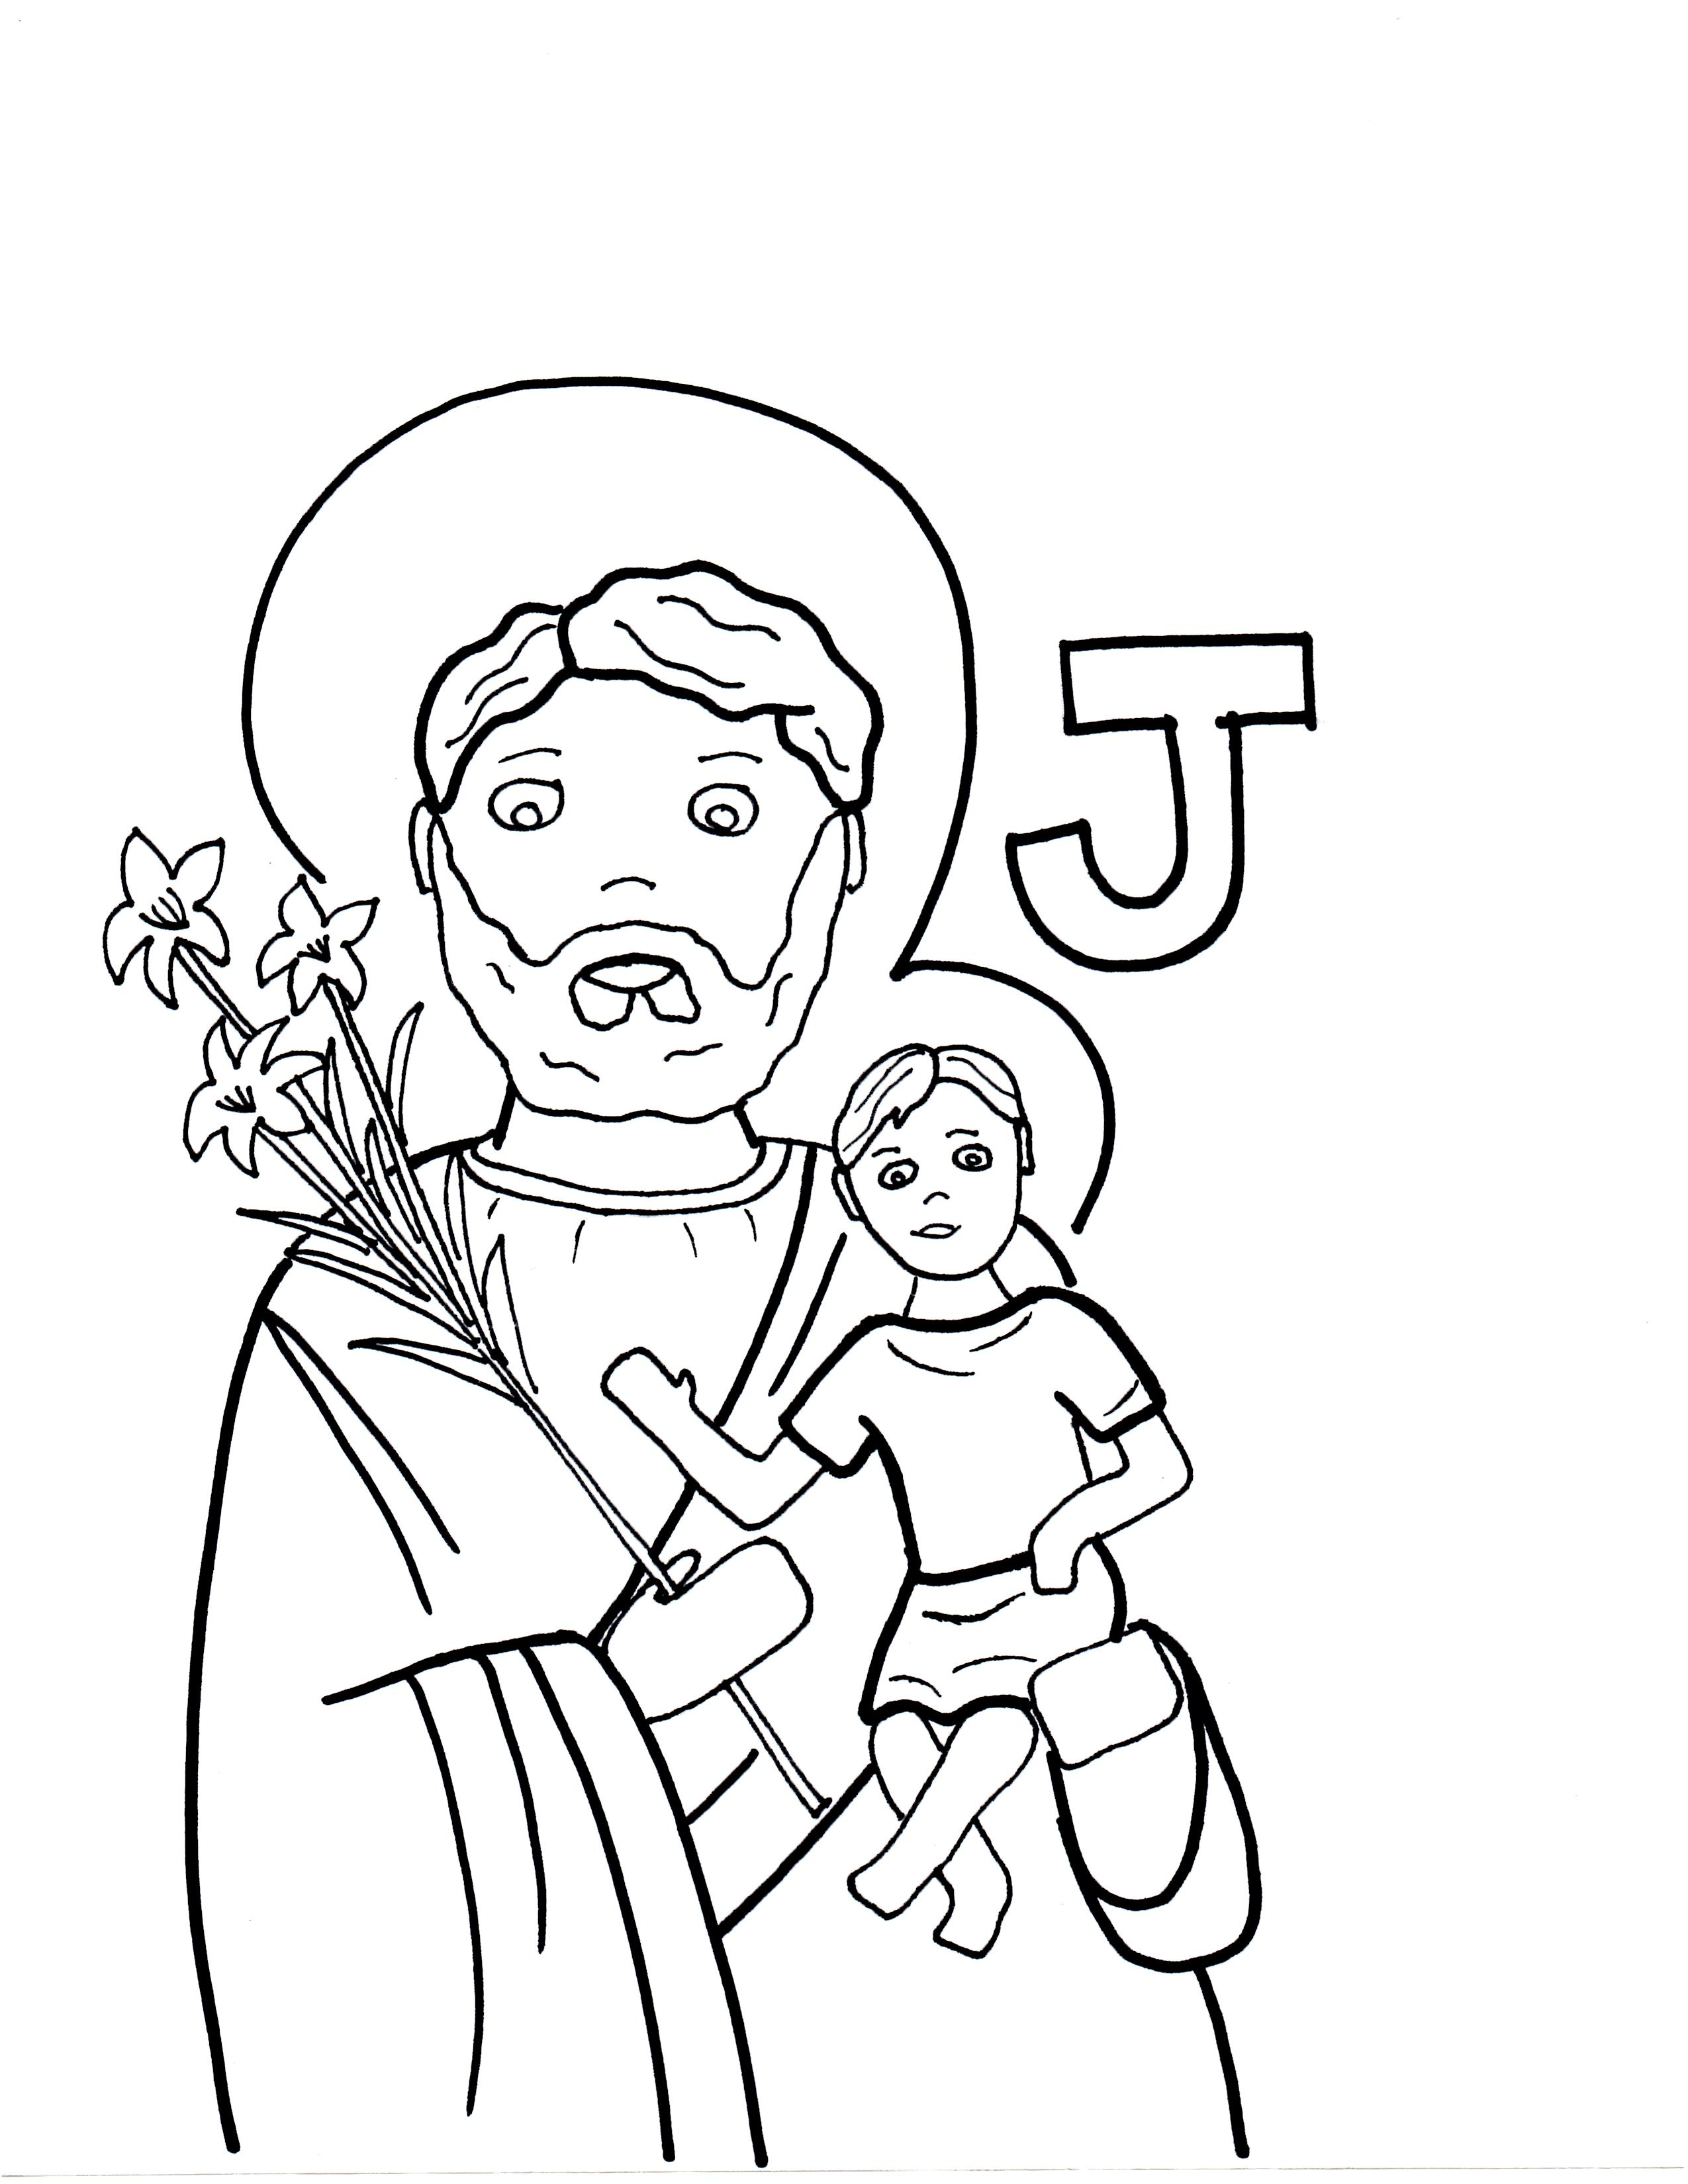 J Is For St. Joseph | Saints To Color - Coloring Home